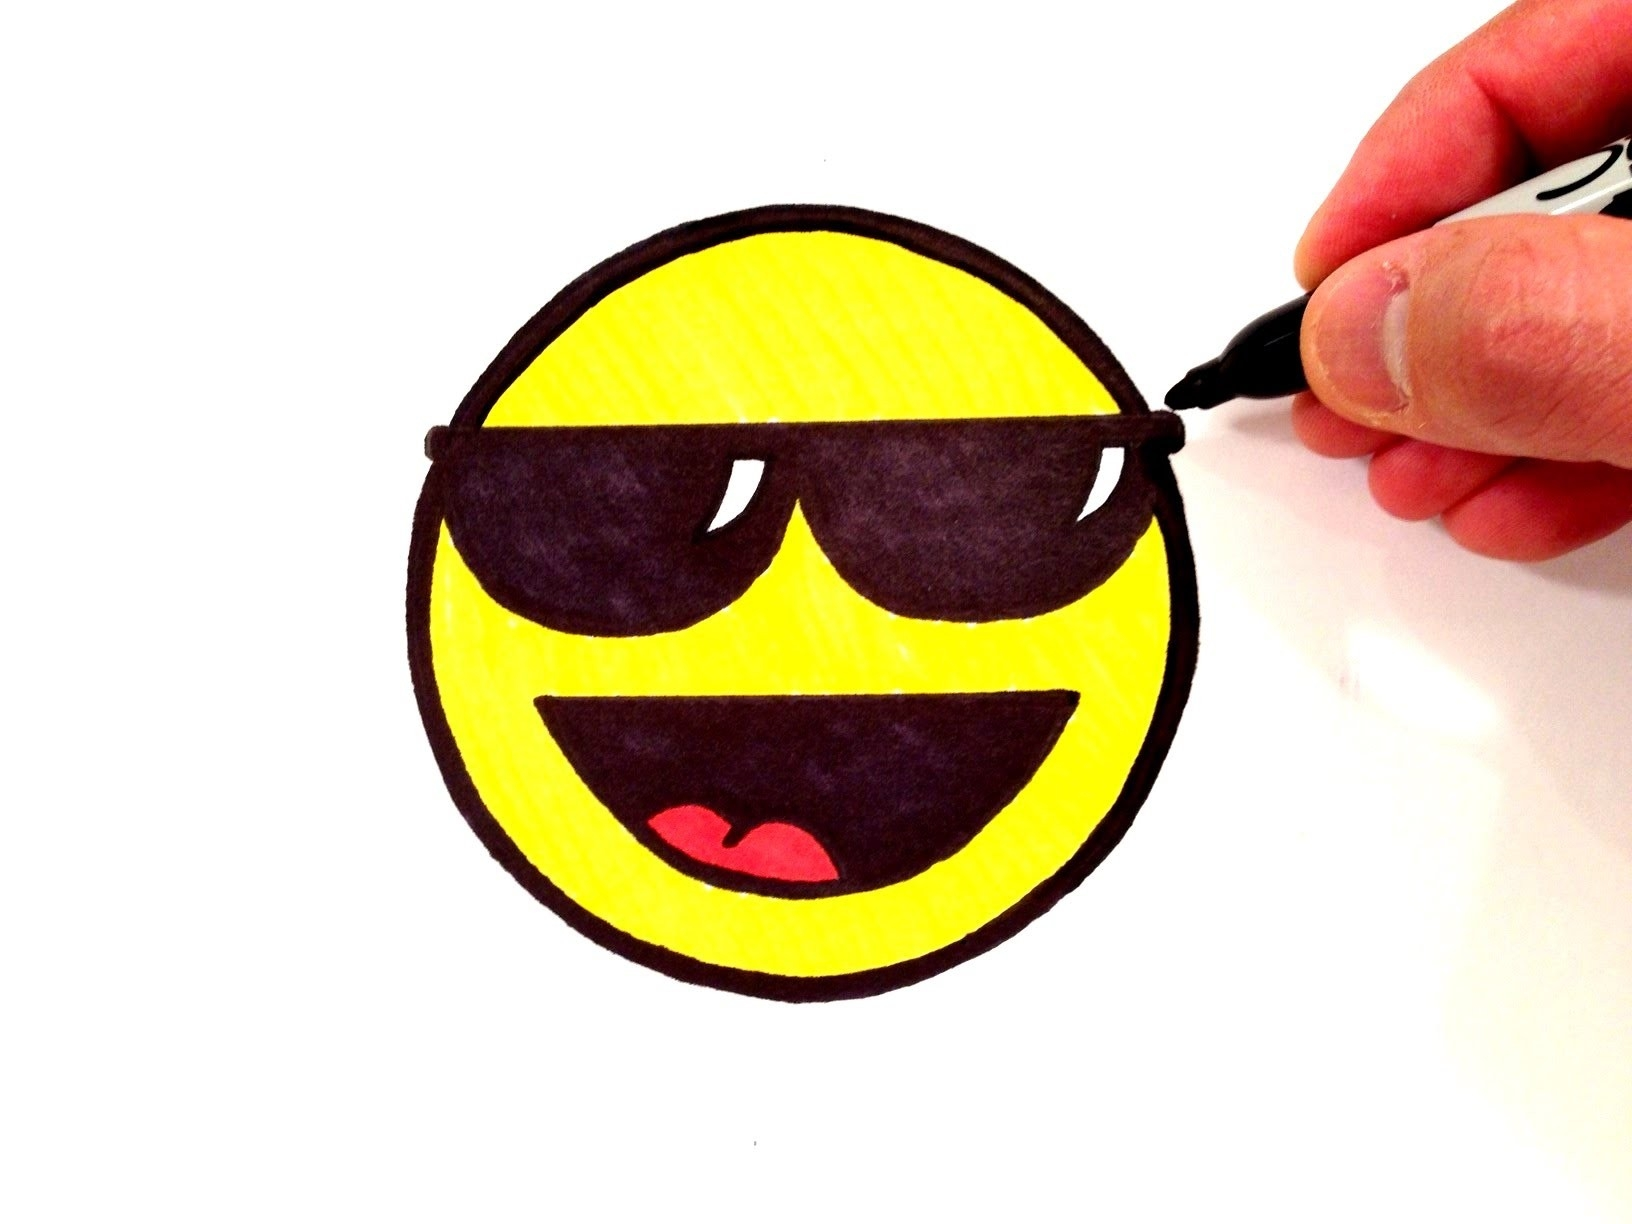 How To Draw A Cool Smiley Face With Sunglasses - Youtube in Cool Smiley Face With Shades 30564